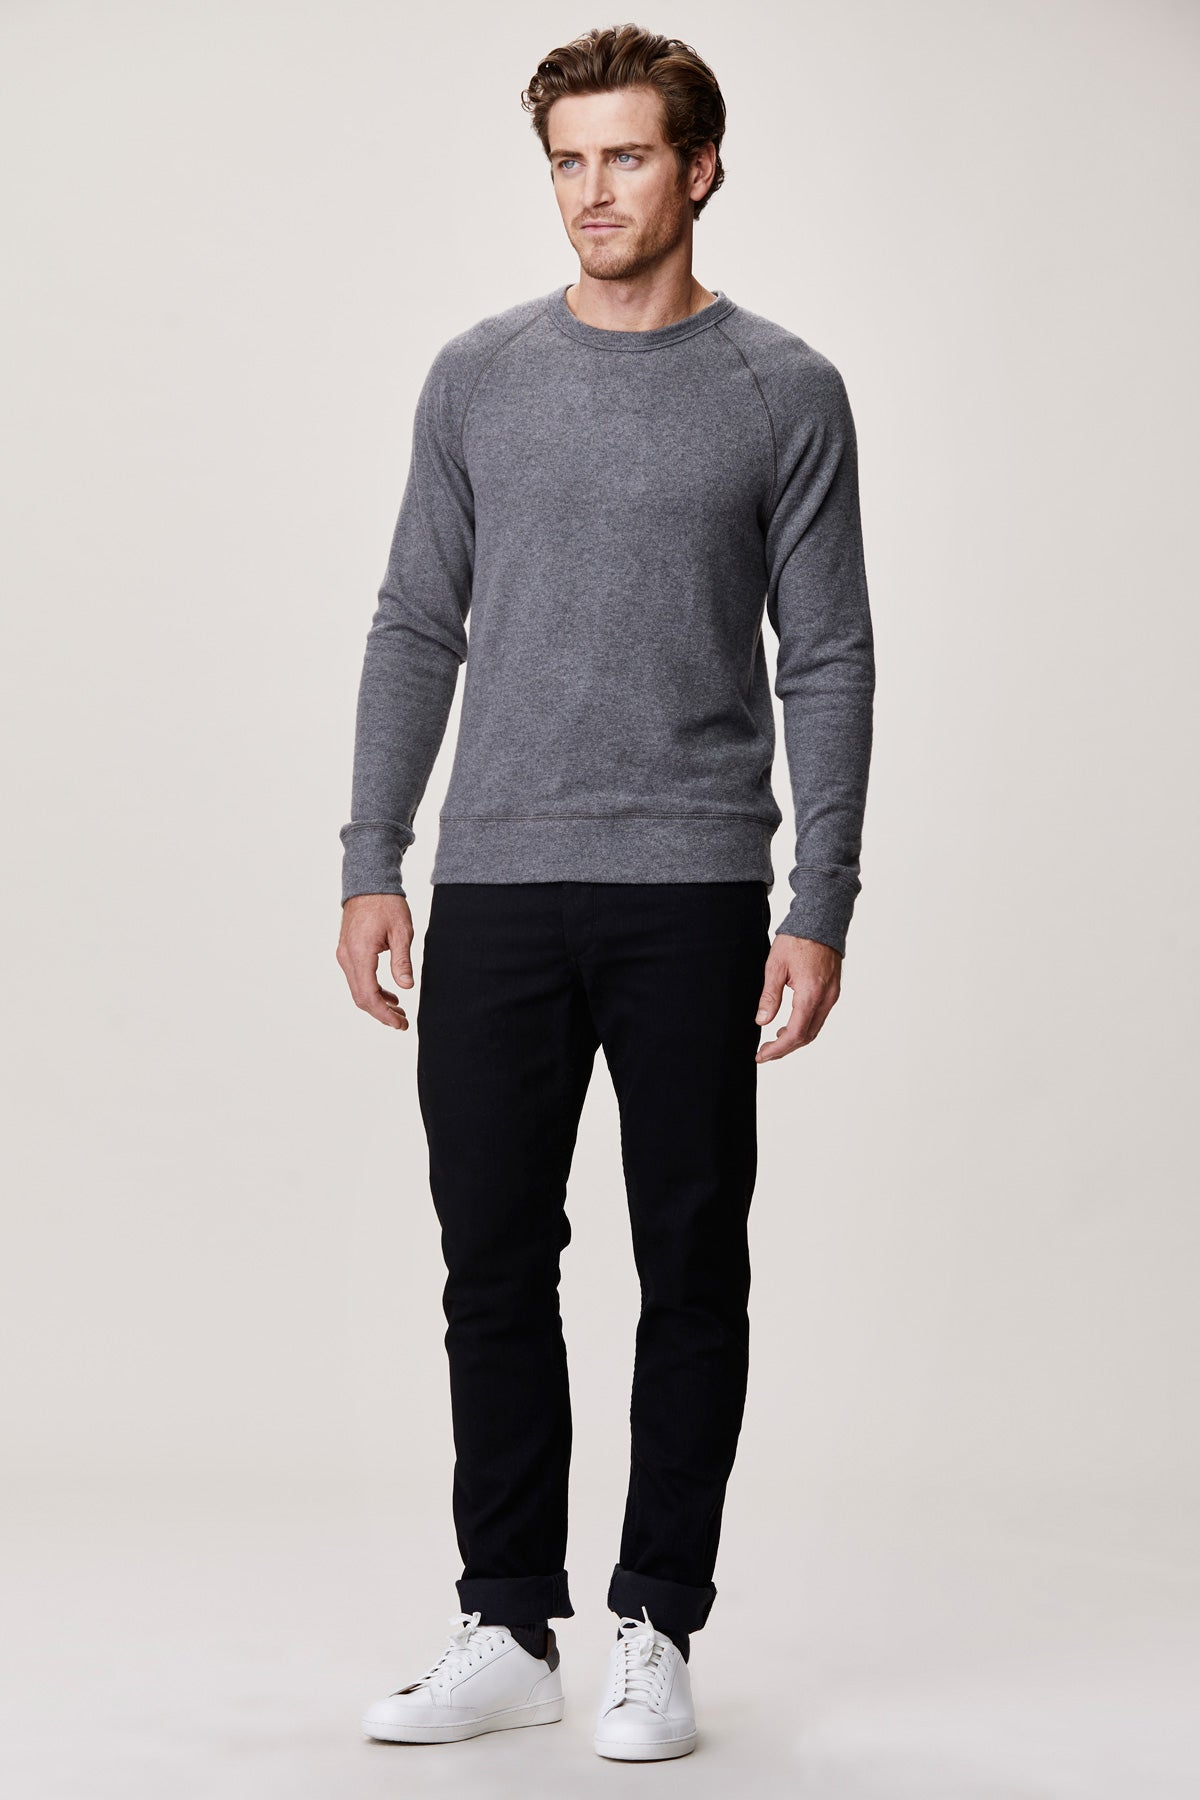 LNA Men's Brushed Hacci Raglan Pullover Sweater in Grey